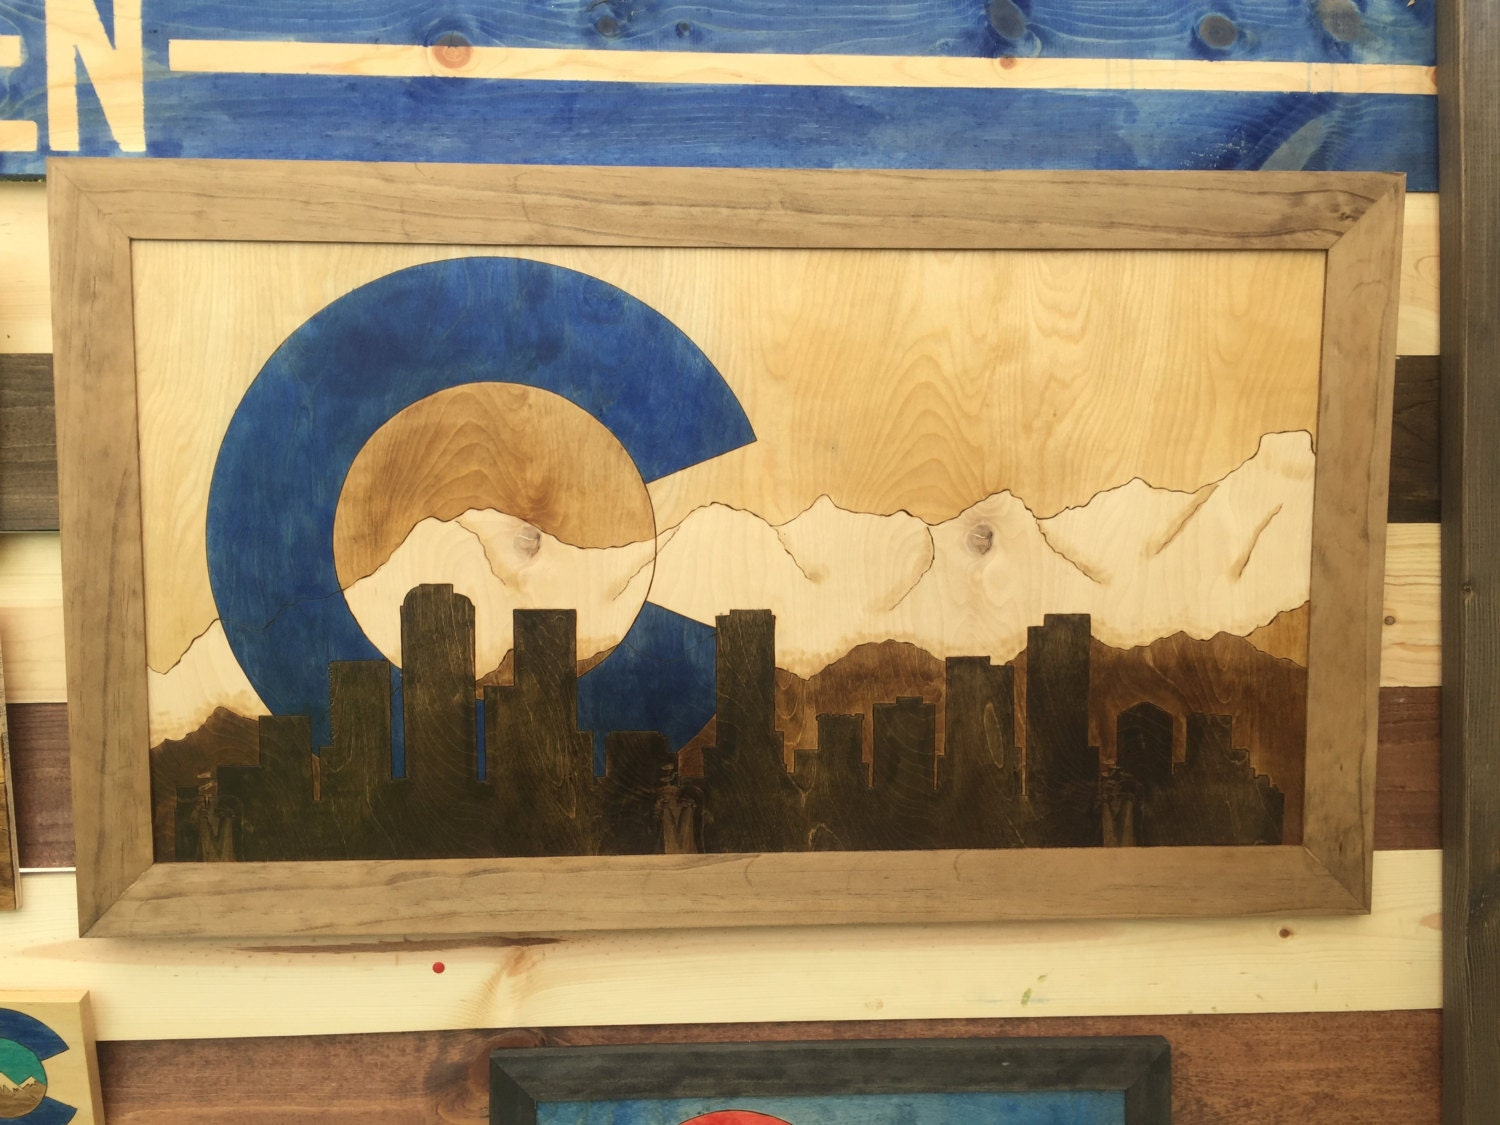 Large Colorado Mountain Denver Skyline Pyrography Wall Art in